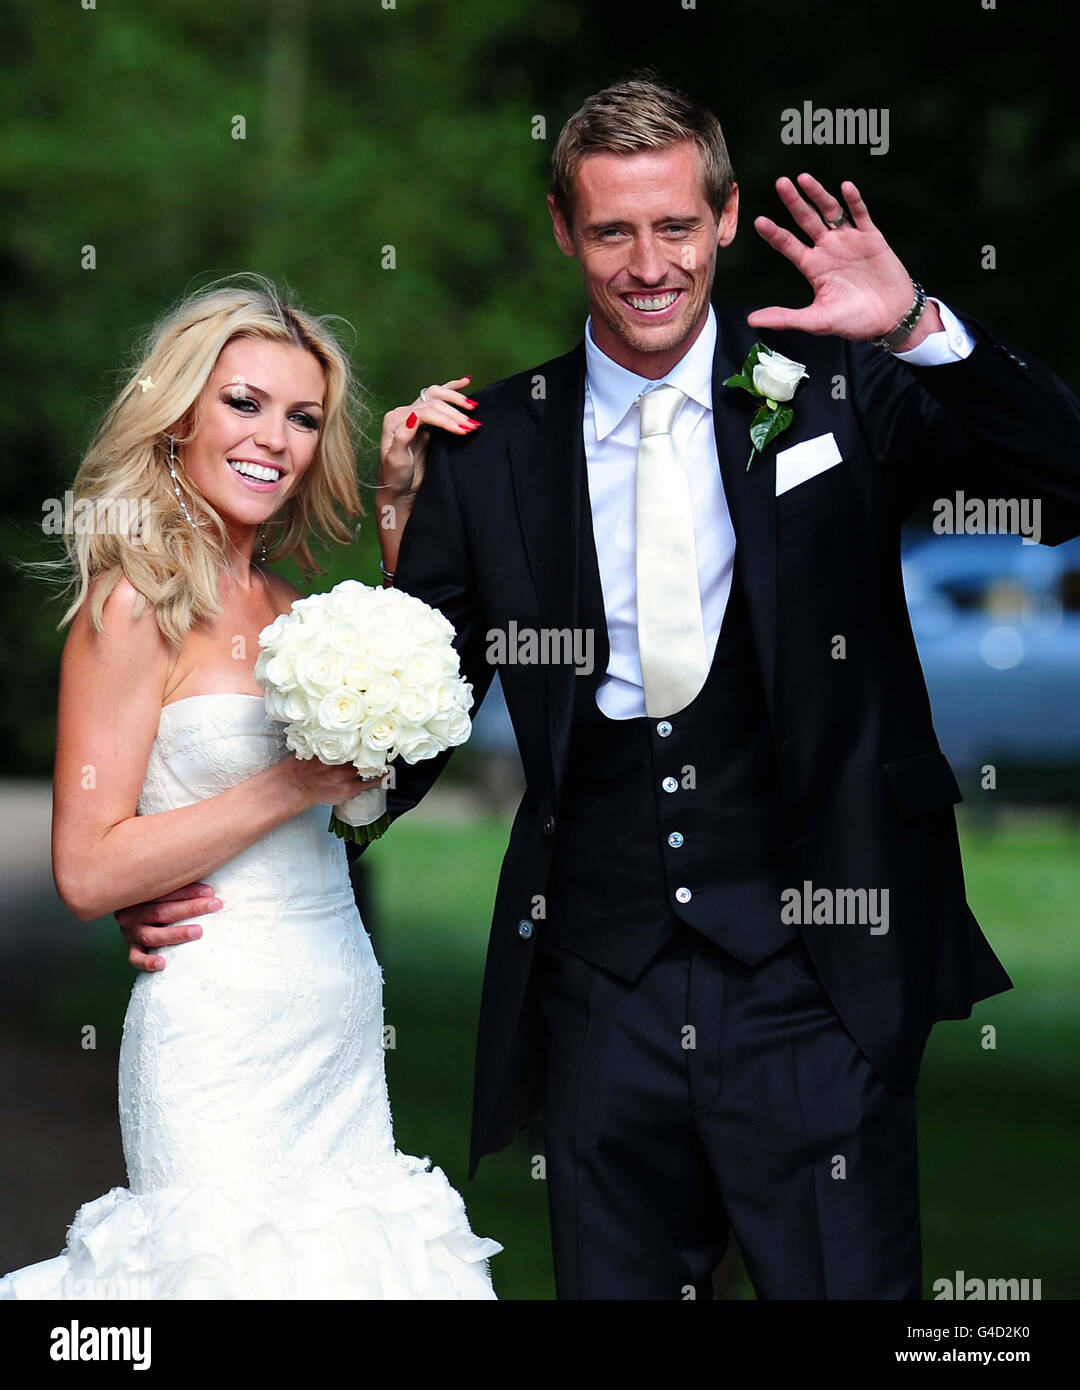 peter crouch stock photos amp peter crouch stock images alamy